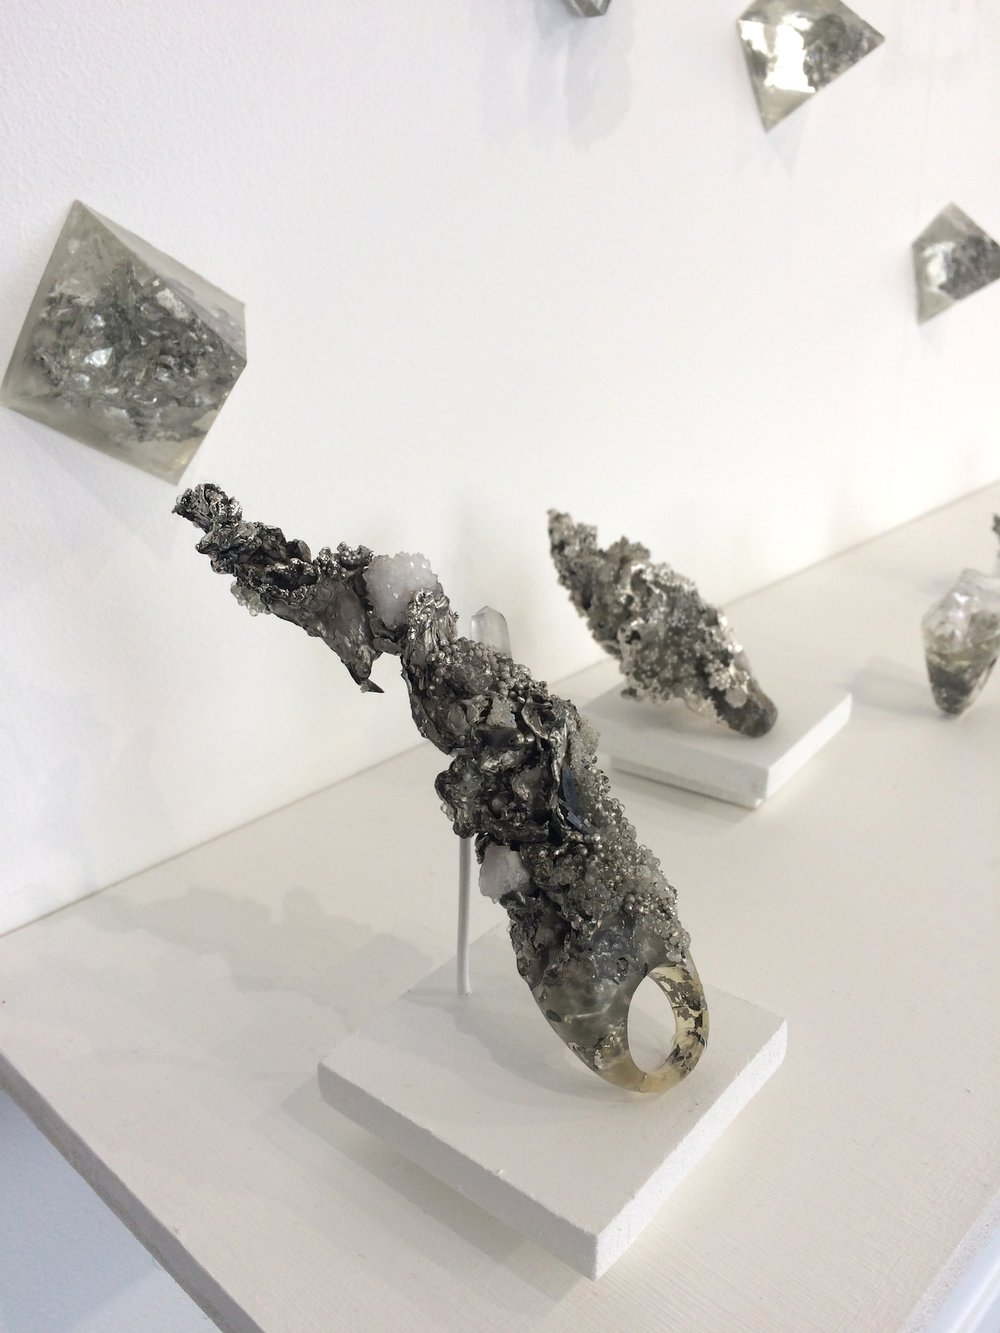 Chloe Lewis -  Impacts of Climate Change  (Pewter, resin, glass, sterling silver, electro-formed silver and natural materials)